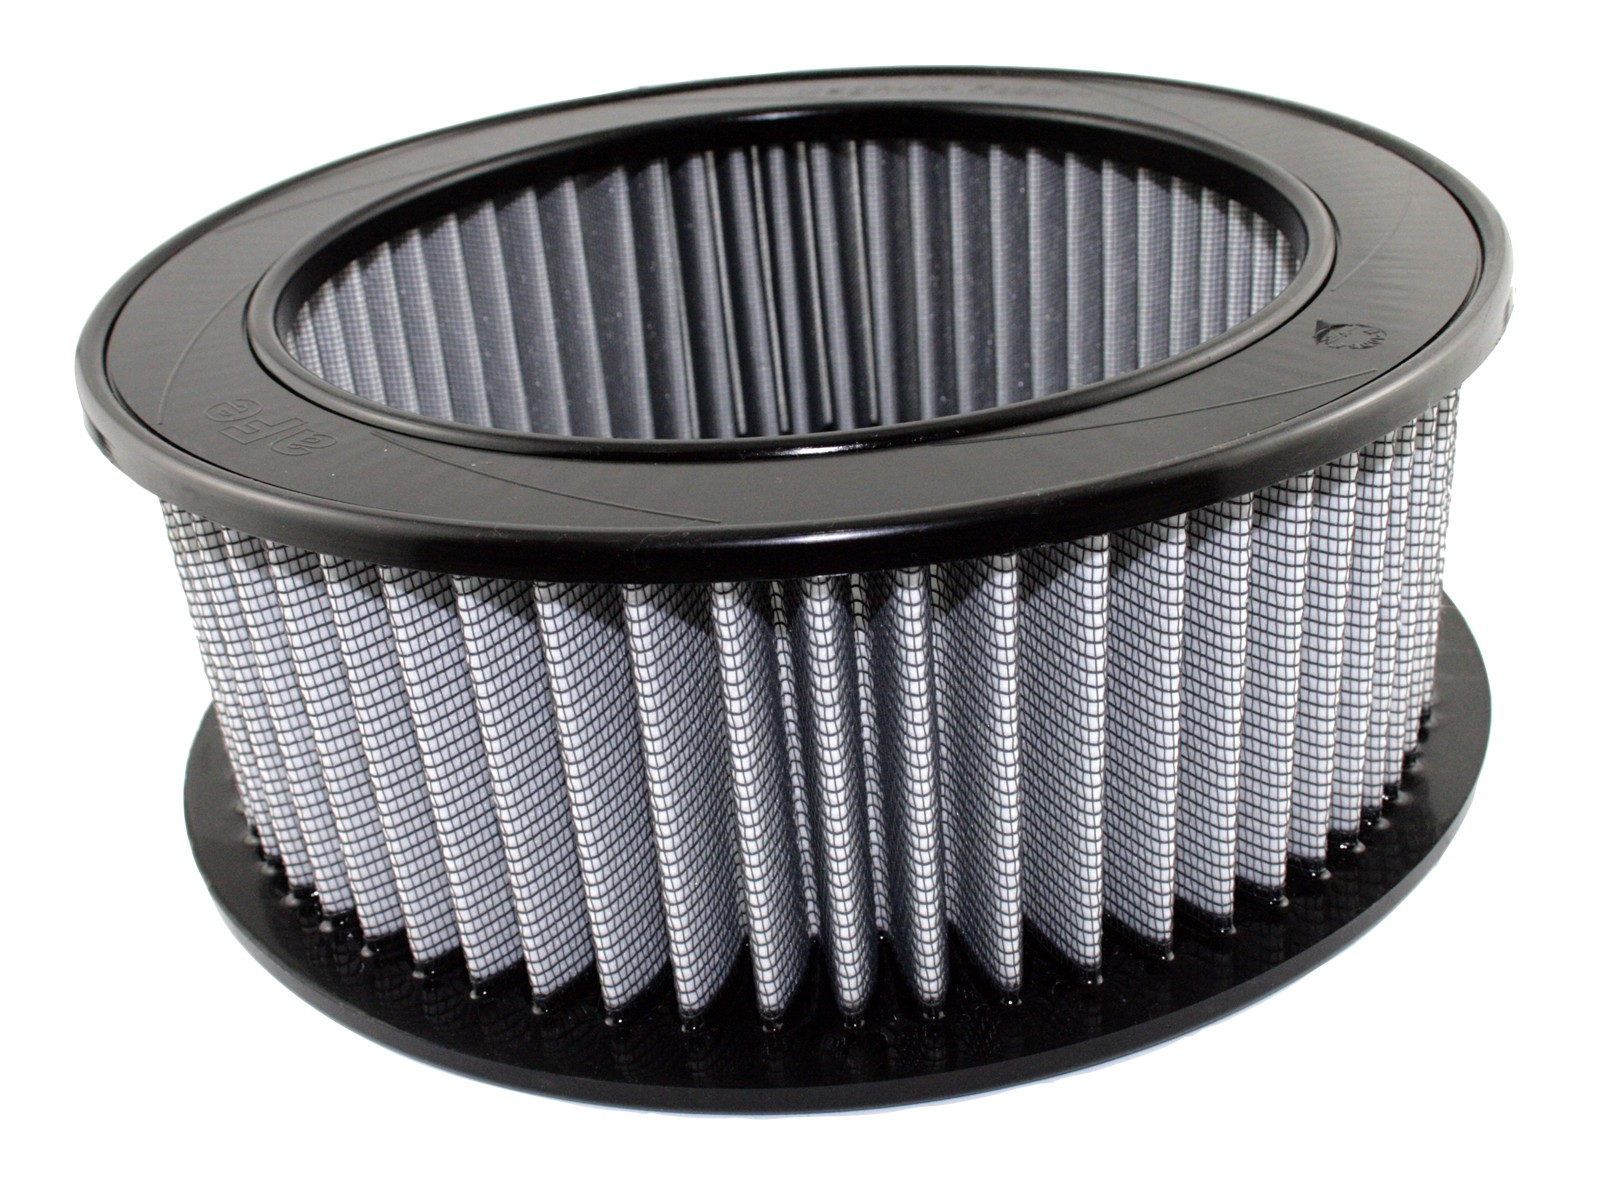 aFe POWER 11-10064 Magnum FLOW Pro DRY S Air Filter